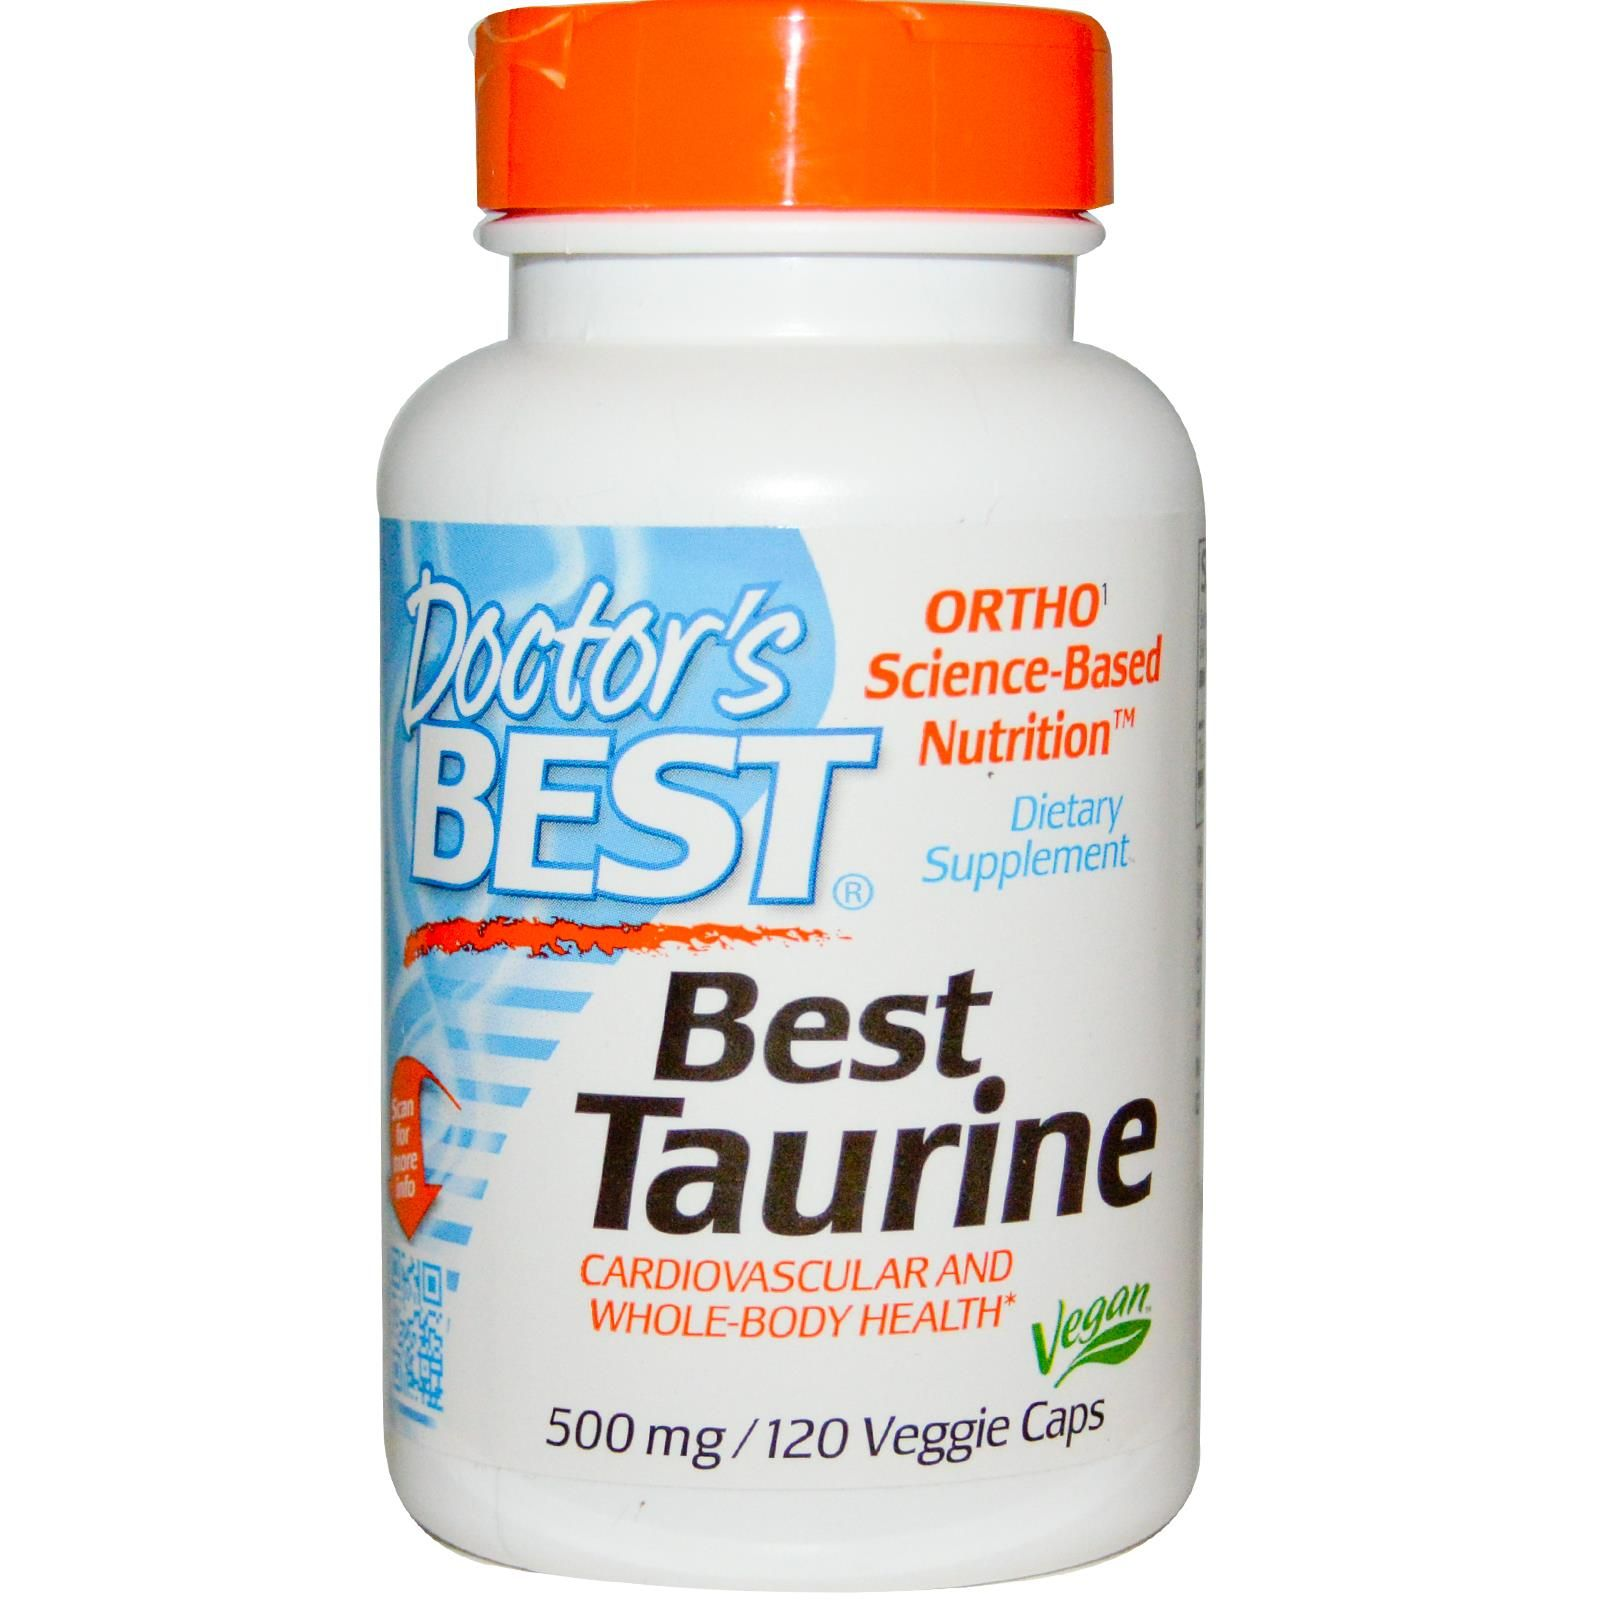 Doctors Best Taurine 500 Mg 120 Veggie Caps Discontinued Blackmores Mens Performance Multi 50 Tablets Item